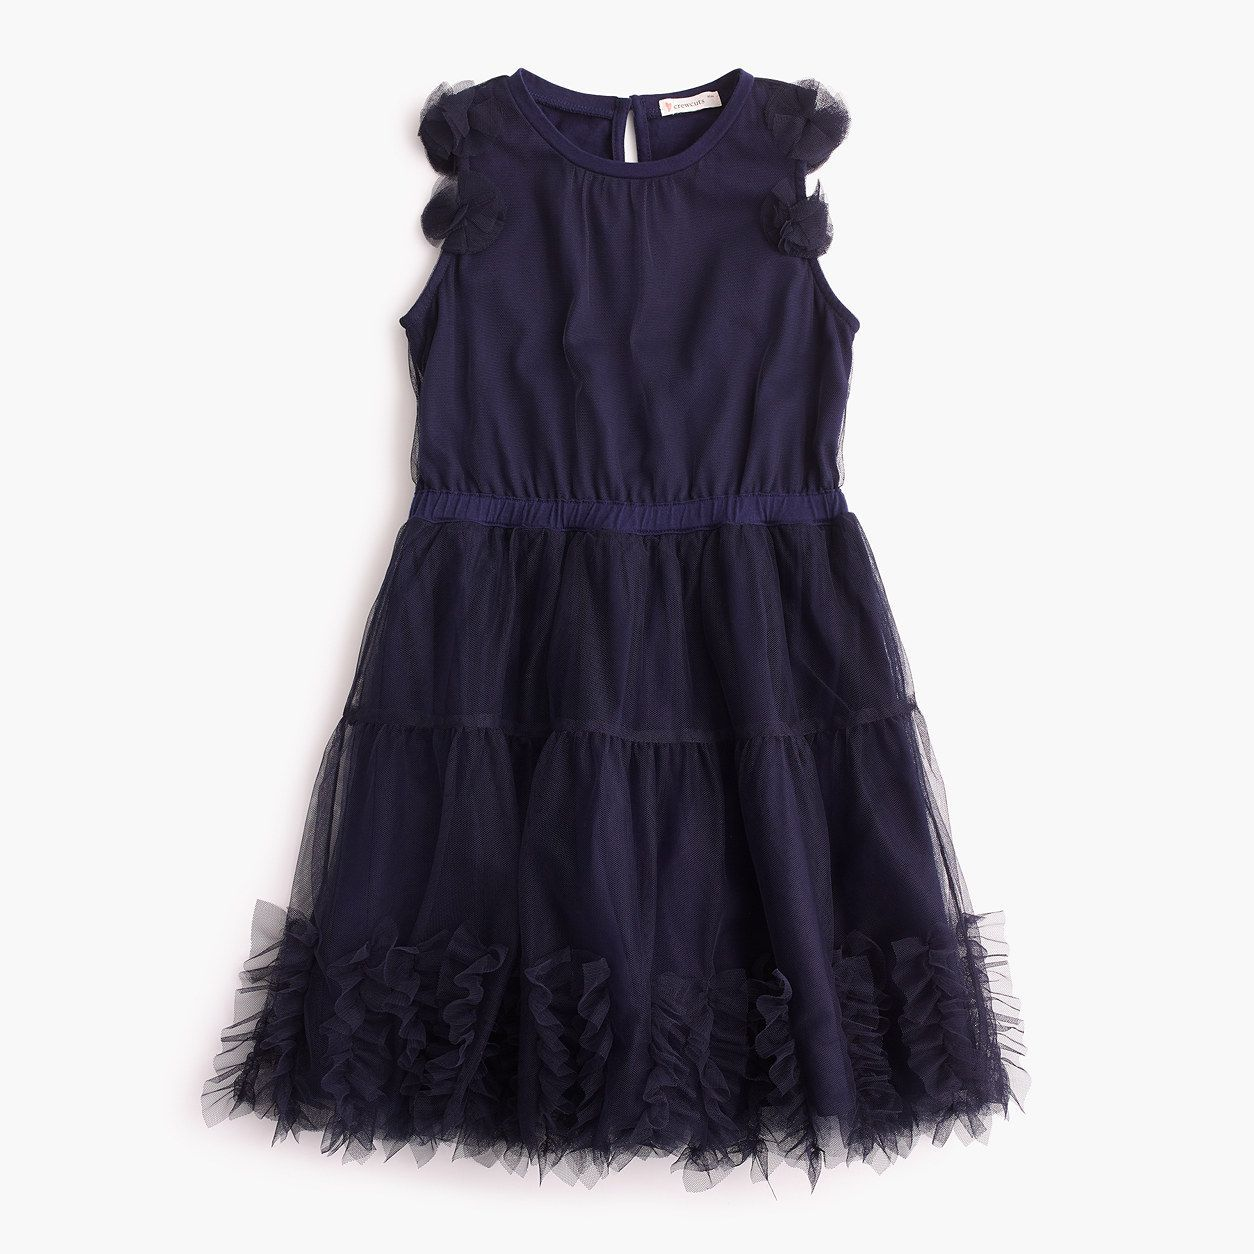 41a2412a8 crewcuts Girls Embellished Tulle Dress (Size 12 Kid) | Products ...